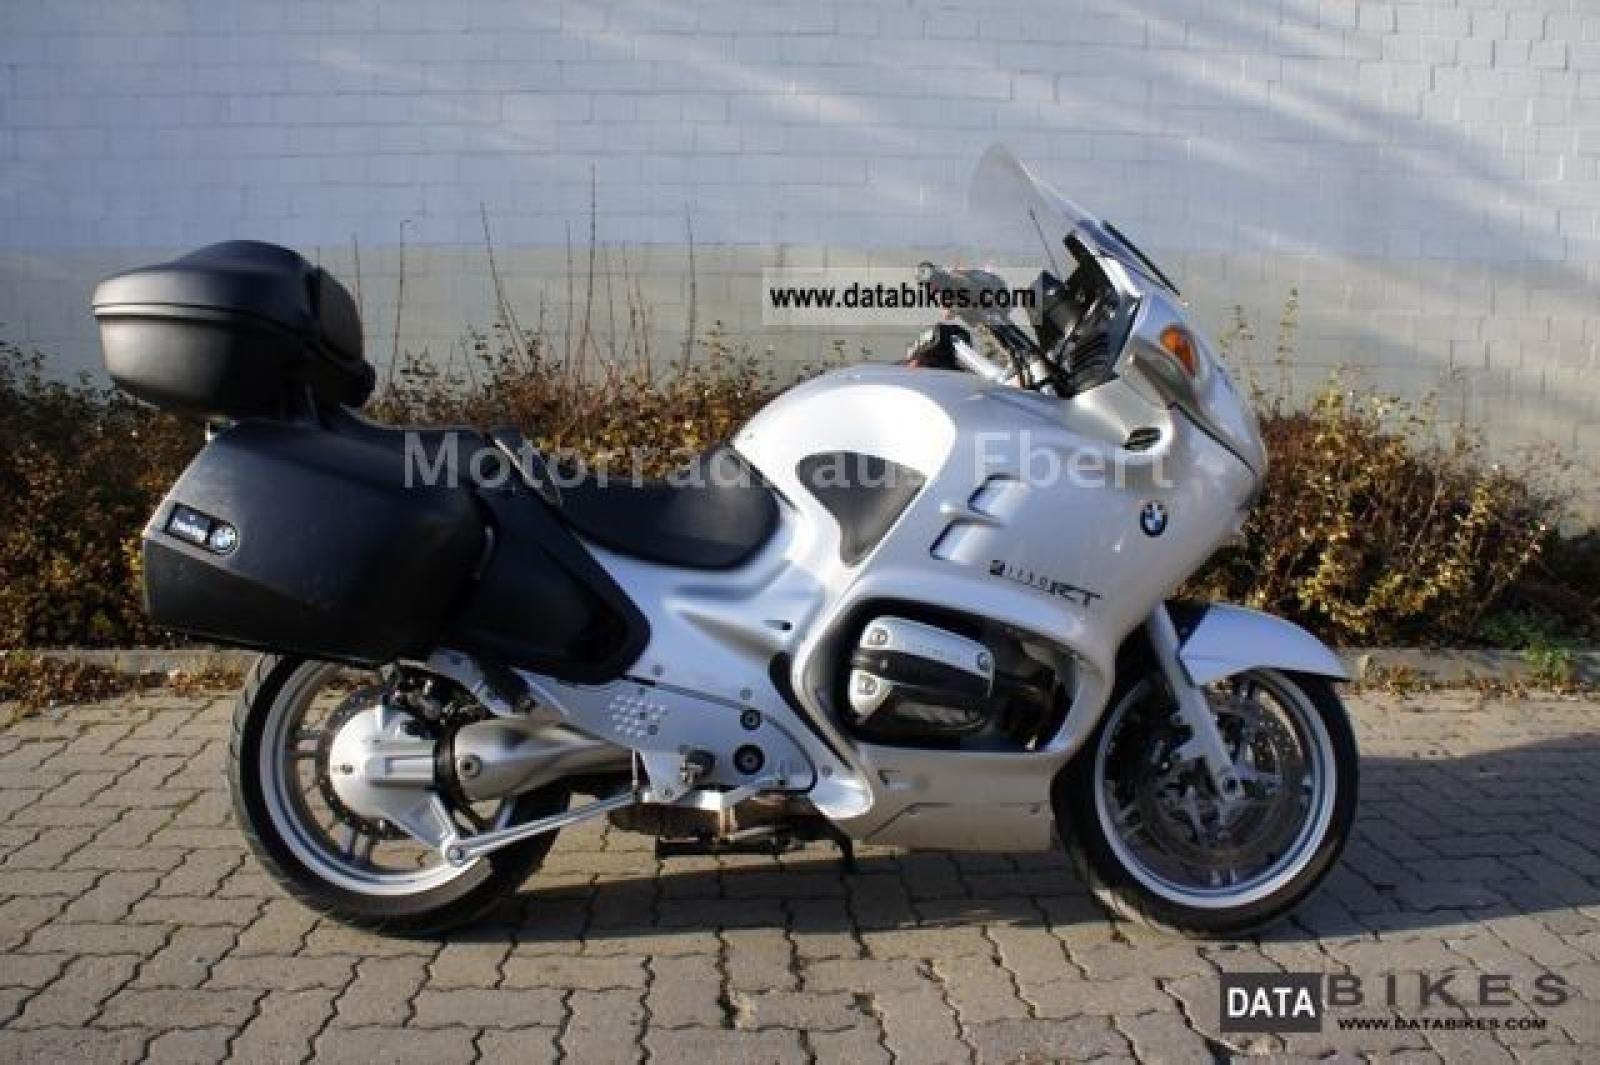 hight resolution of  bmw r1150rt 2002 2 800 1024 1280 1600 origin